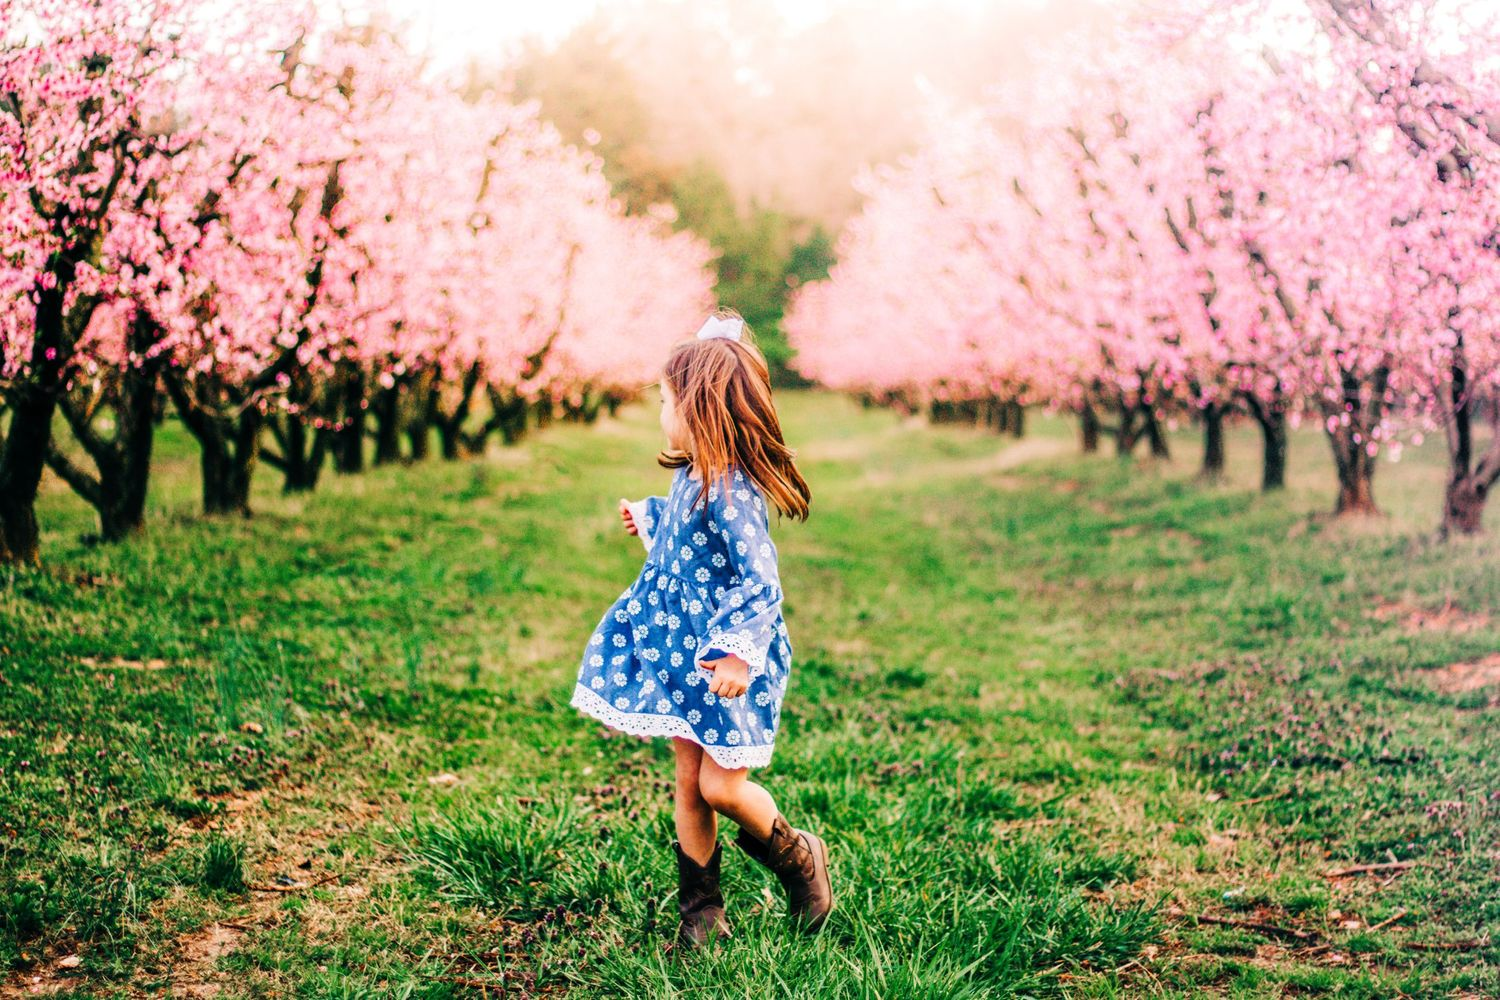 Little girl standing amongst the peach orchard blooms in Fort Mill, SC for a photo session